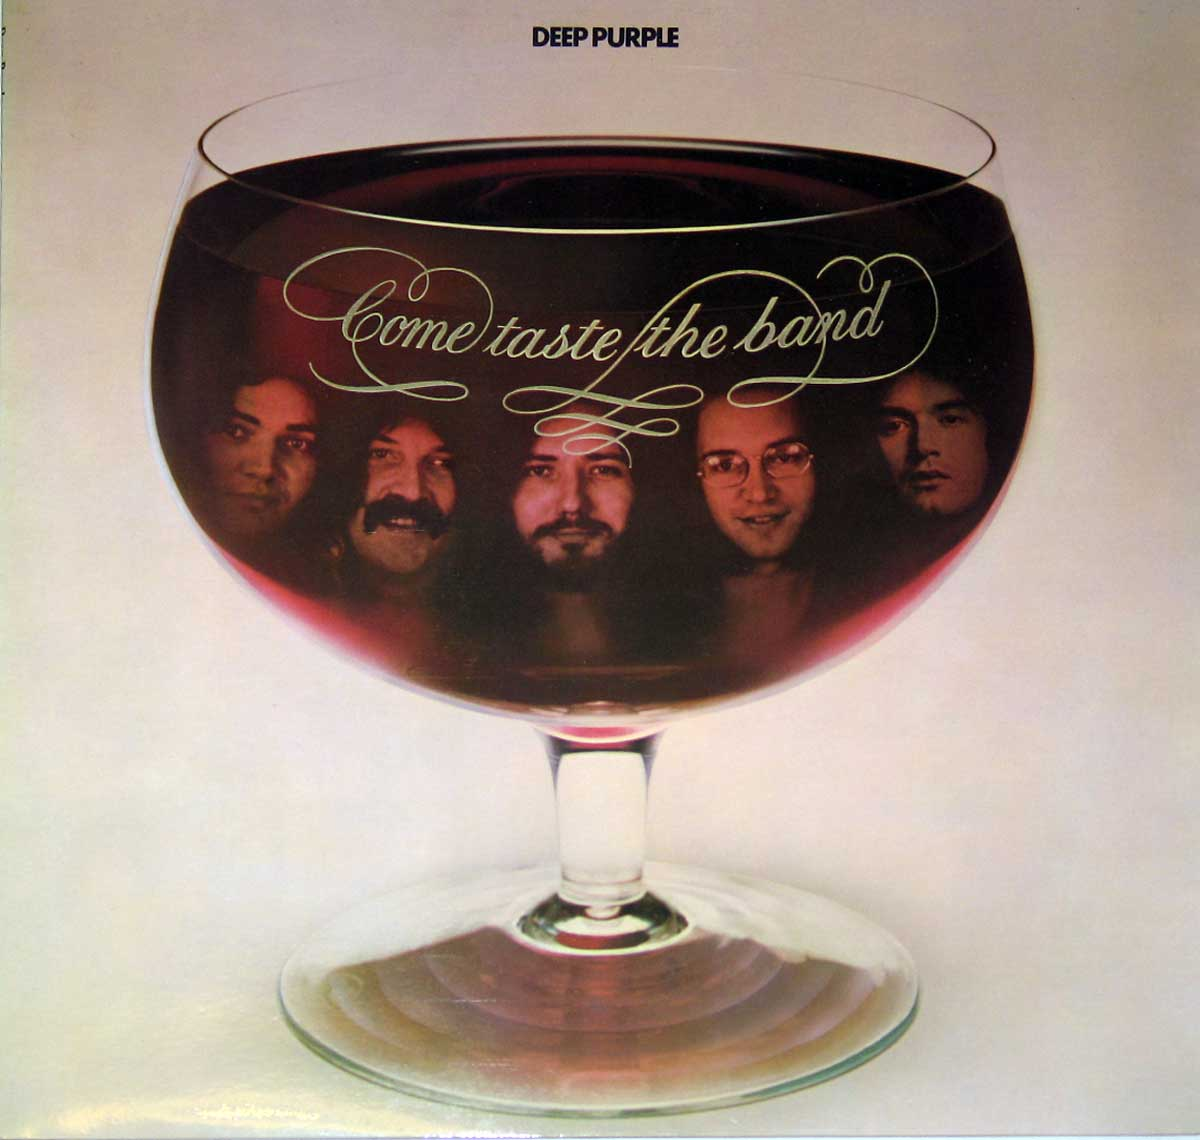 large photo of the album front cover of: DEEP PURPLE Come Taste The Band England